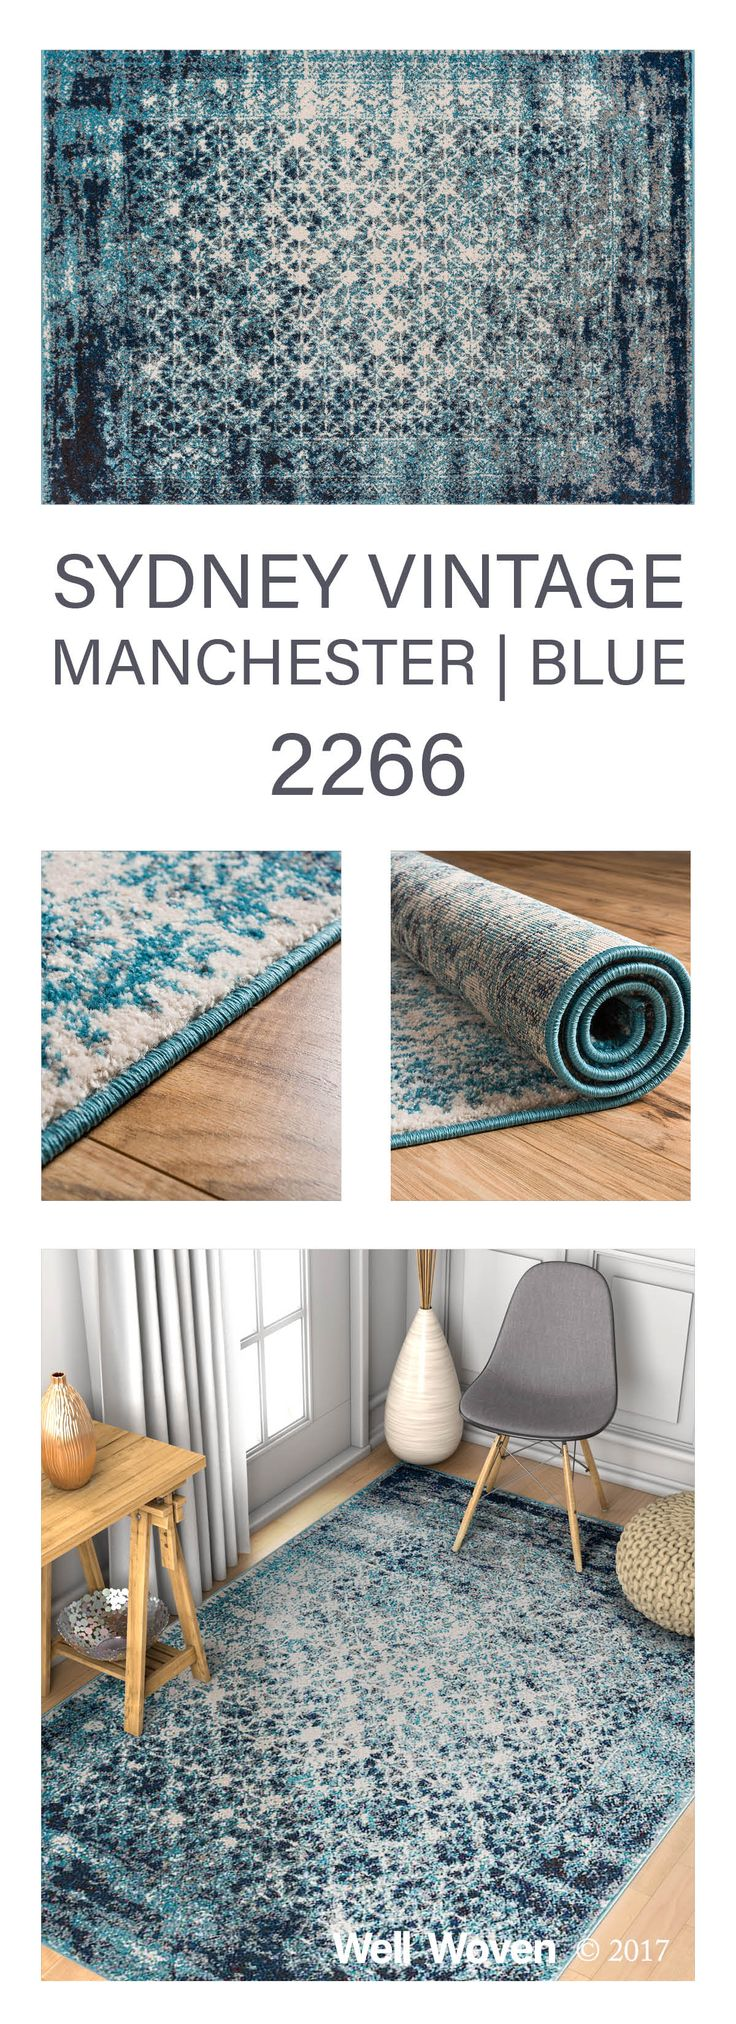 Sydney Vintage Manchester Blue is a bright and trendy rug with both modern geometric and updated traditional patterns.